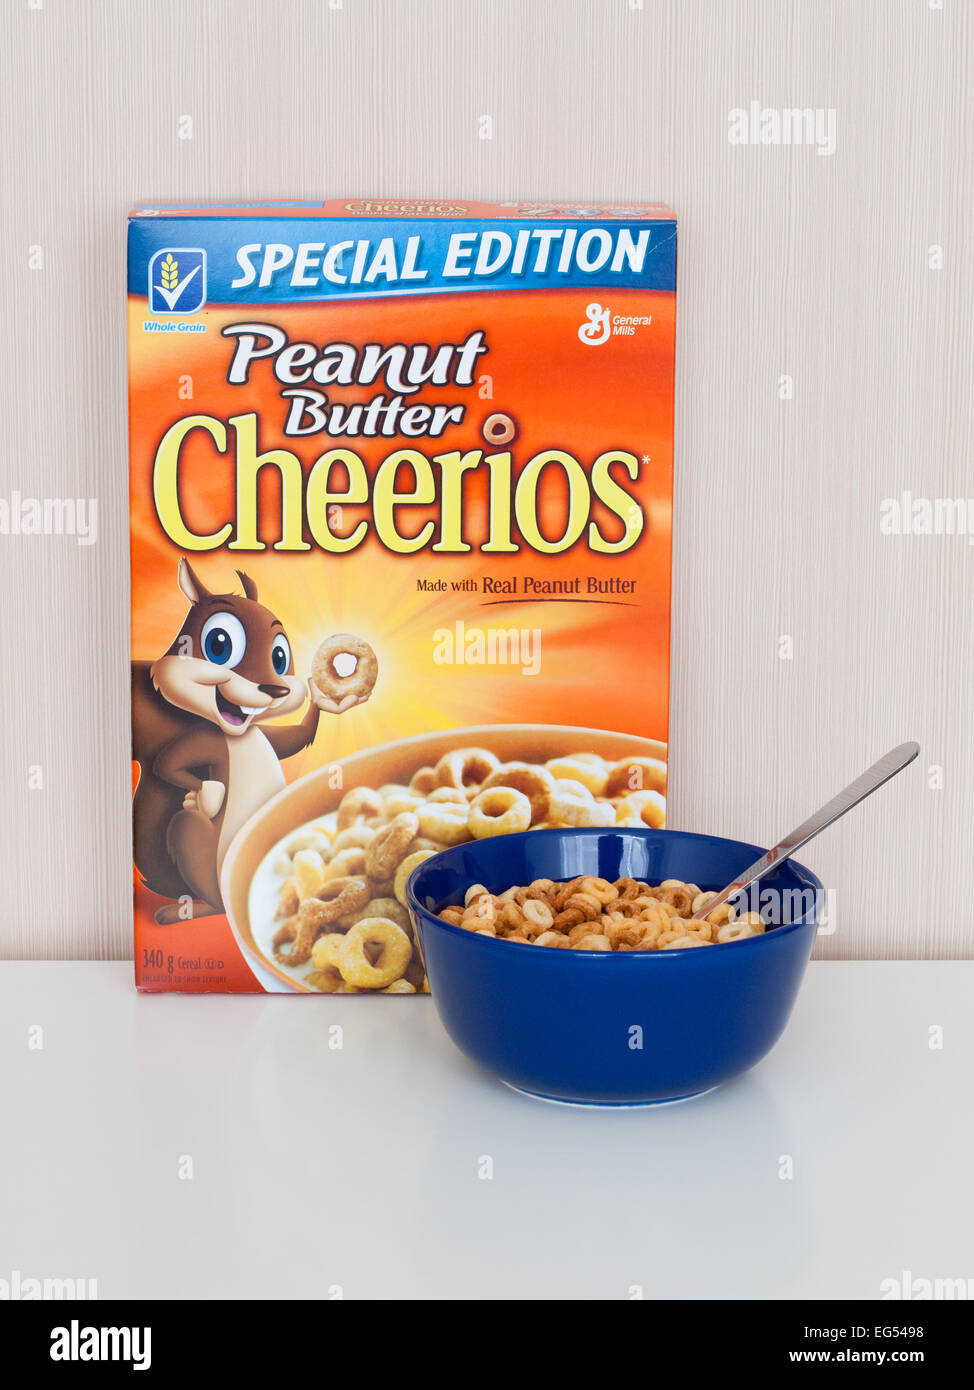 A box and bowl of Peanut Butter Cheerios cereal, produced by General Mills, Inc. - Stock Image